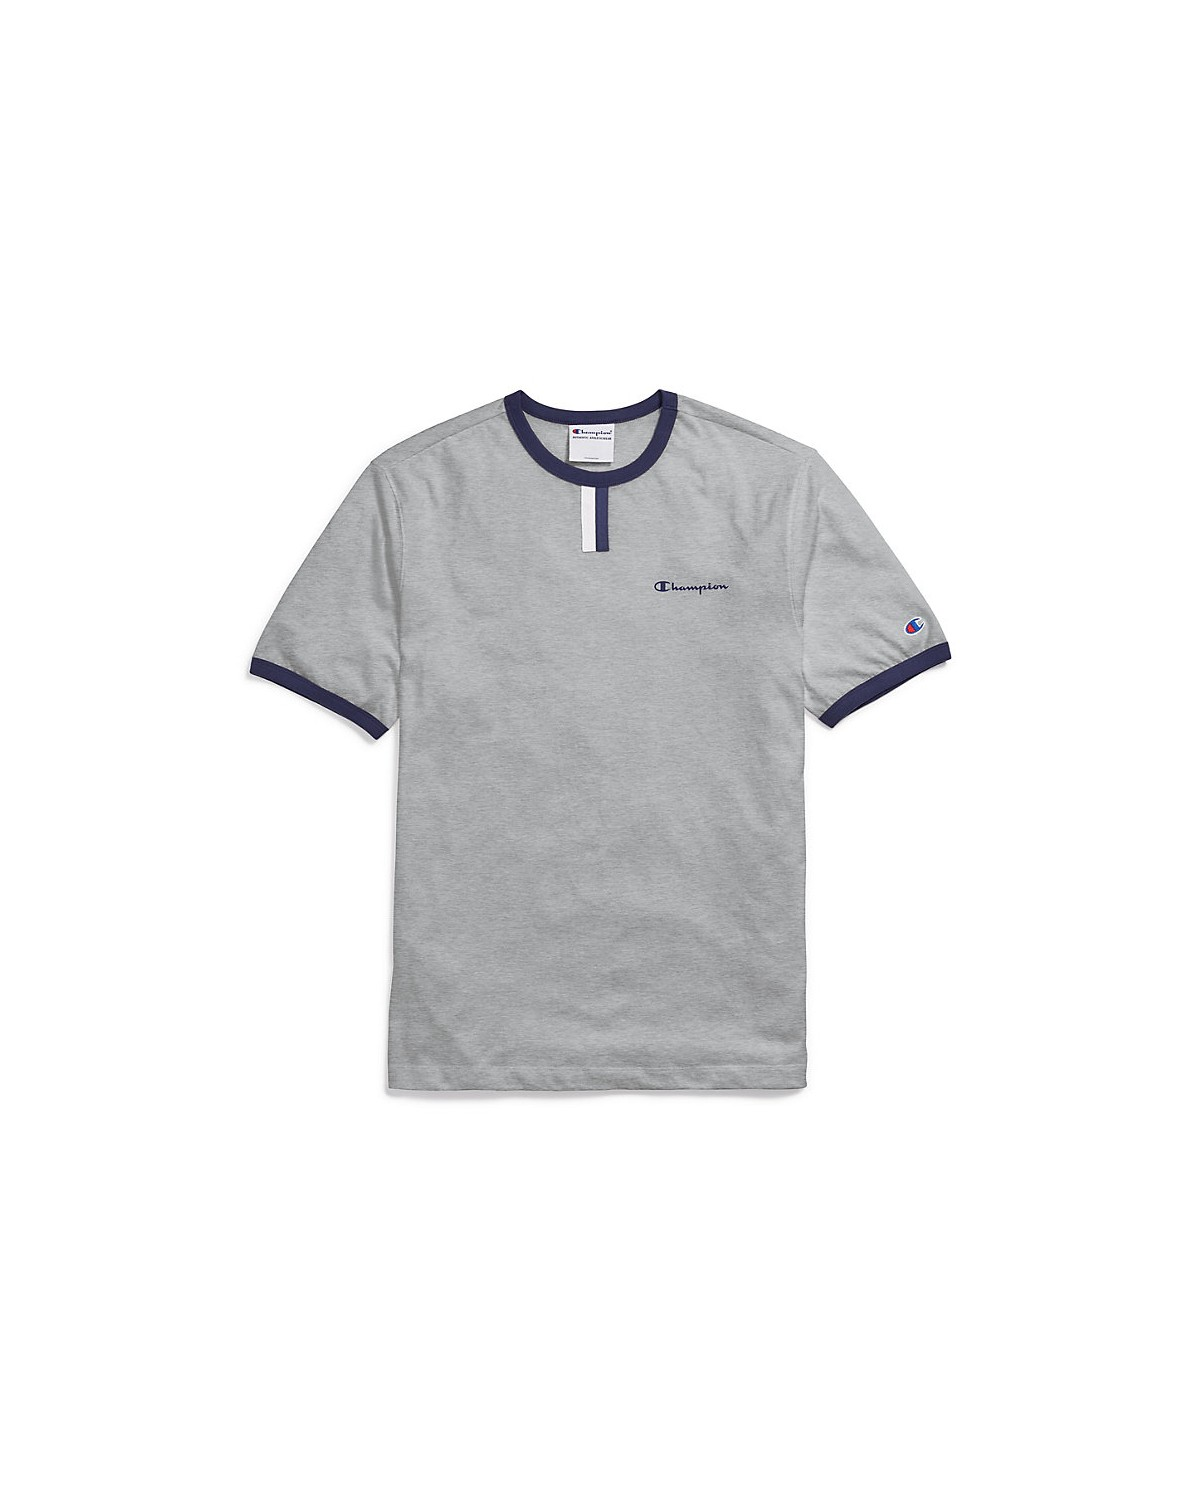 T5050 550031 Champion Oxford Grey/Imperial Indigo/White